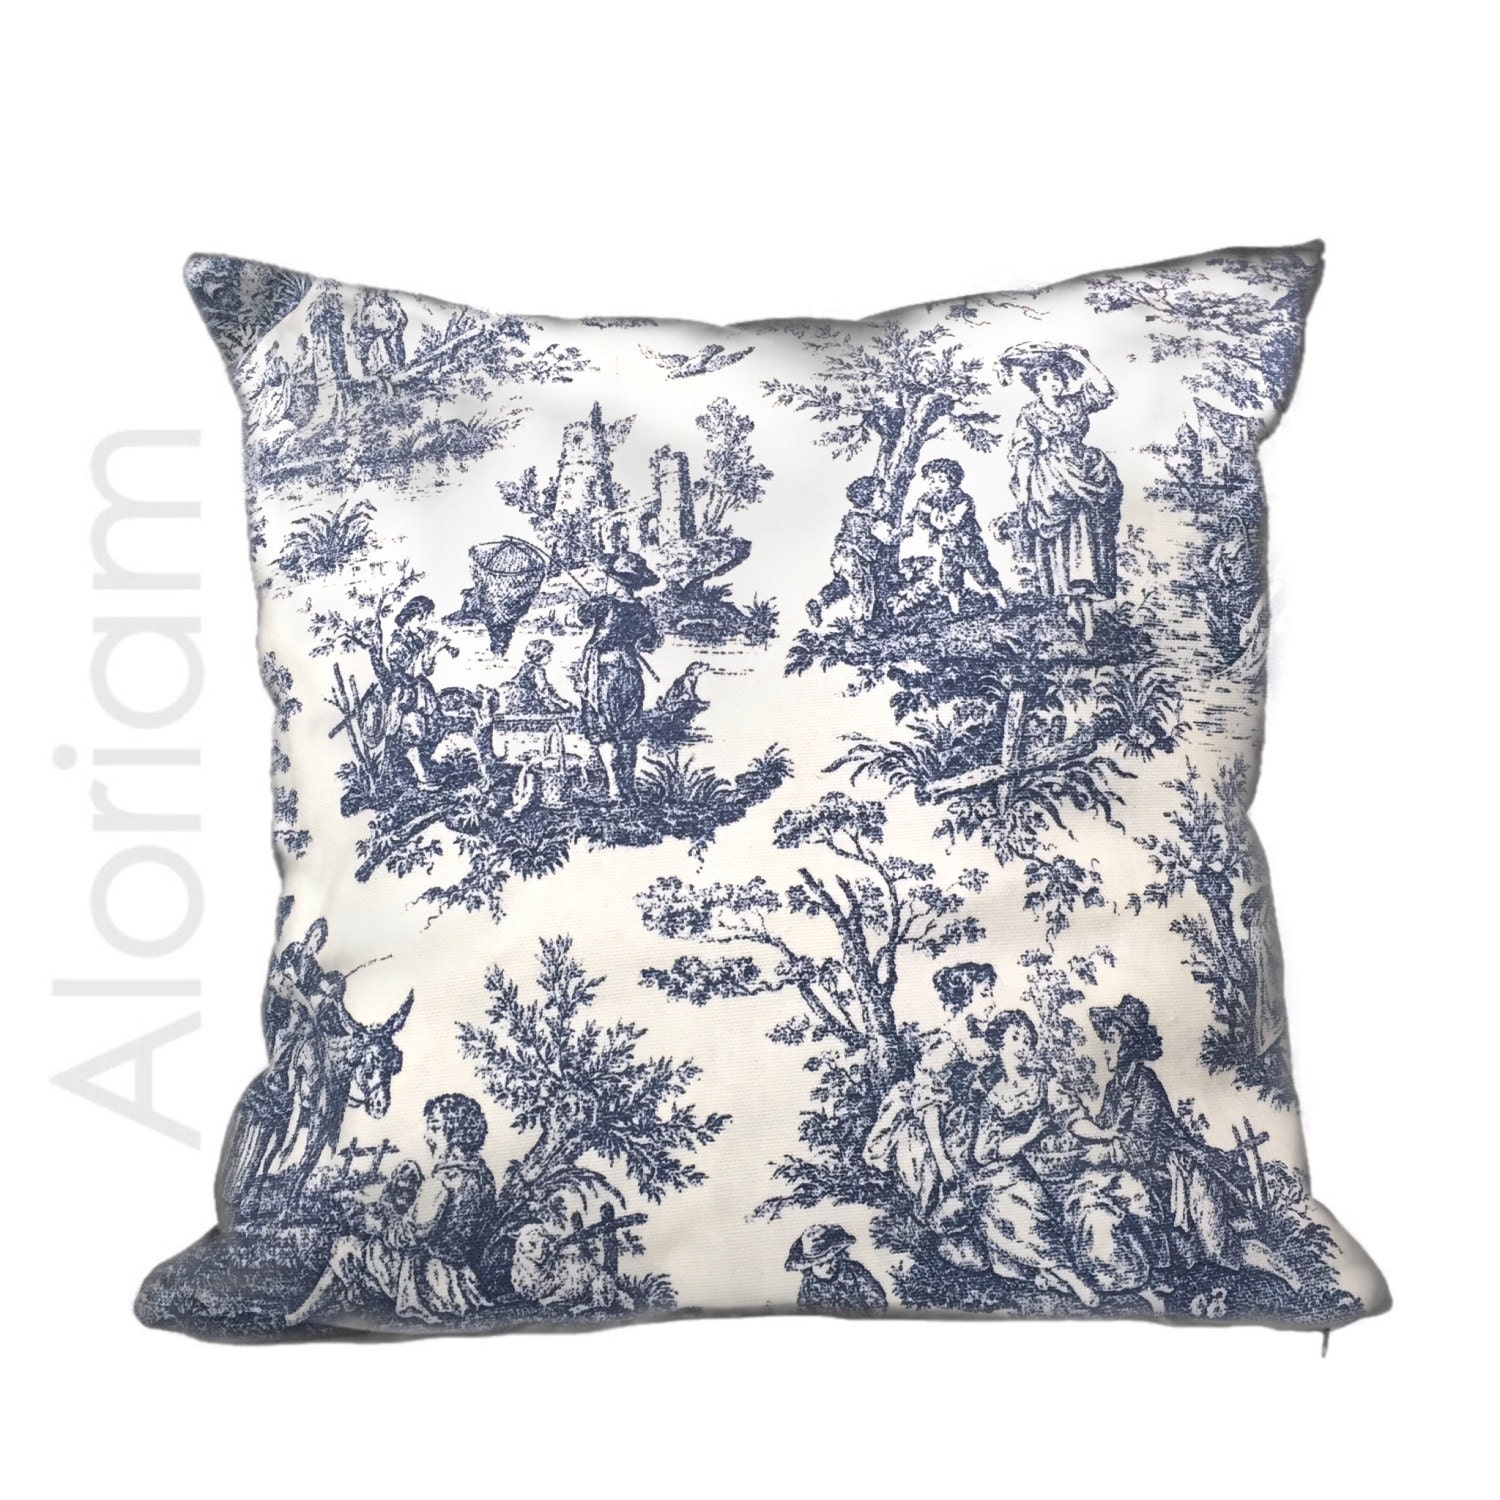 Country Blue Throw Pillows : French Country Navy Blue White Toile Print Throw Pillow